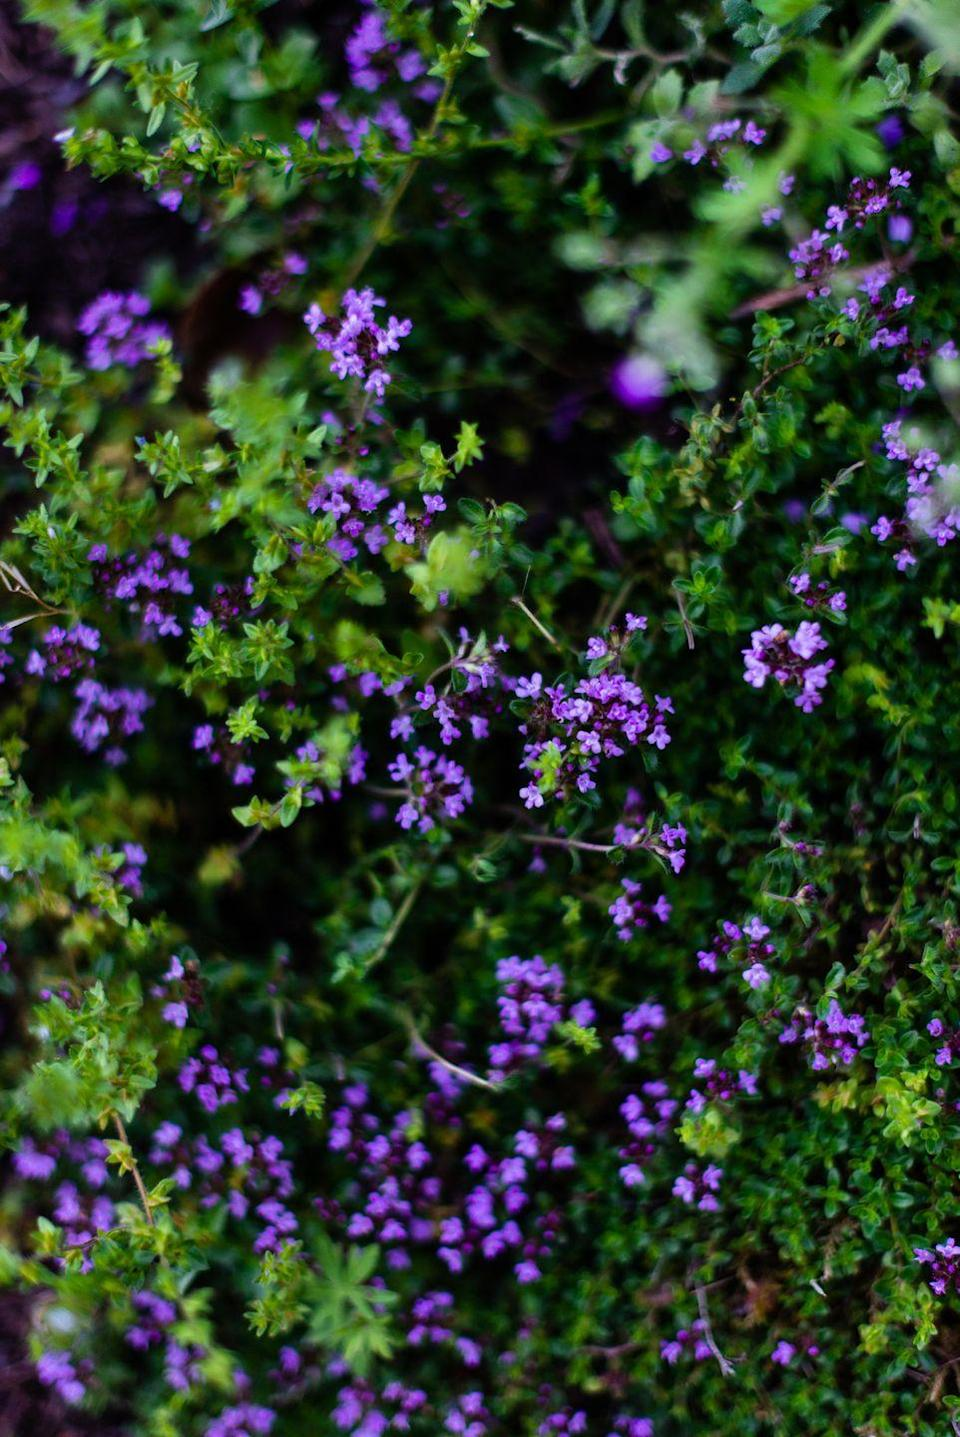 """<p>Thyme is a low-growing perennial which produces gorgeous tiny pink or purple flowers in early spring. It actually makes a great groundcover with little maintenance! There are many different types, including lemon, orange, and lavender thyme.</p><p><a class=""""link rapid-noclick-resp"""" href=""""https://go.redirectingat.com?id=74968X1596630&url=https%3A%2F%2Fwww.burpee.com%2Fherbs%2Fthyme%2Fthyme-orangelo-prod500751.html&sref=https%3A%2F%2Fwww.thepioneerwoman.com%2Fhome-lifestyle%2Fgardening%2Fg36533467%2Fbest-perennial-herbs%2F"""" rel=""""nofollow noopener"""" target=""""_blank"""" data-ylk=""""slk:SHOP NOW"""">SHOP NOW</a></p>"""